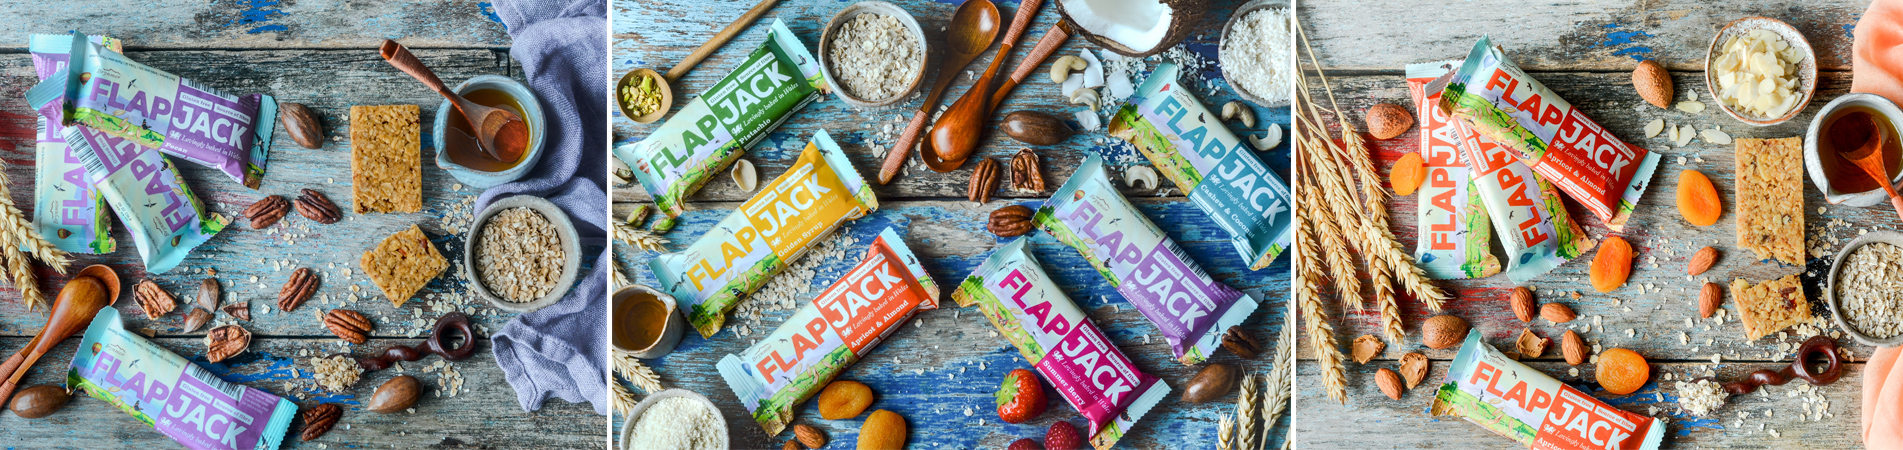 New website launched for flapjack brand Brynmor